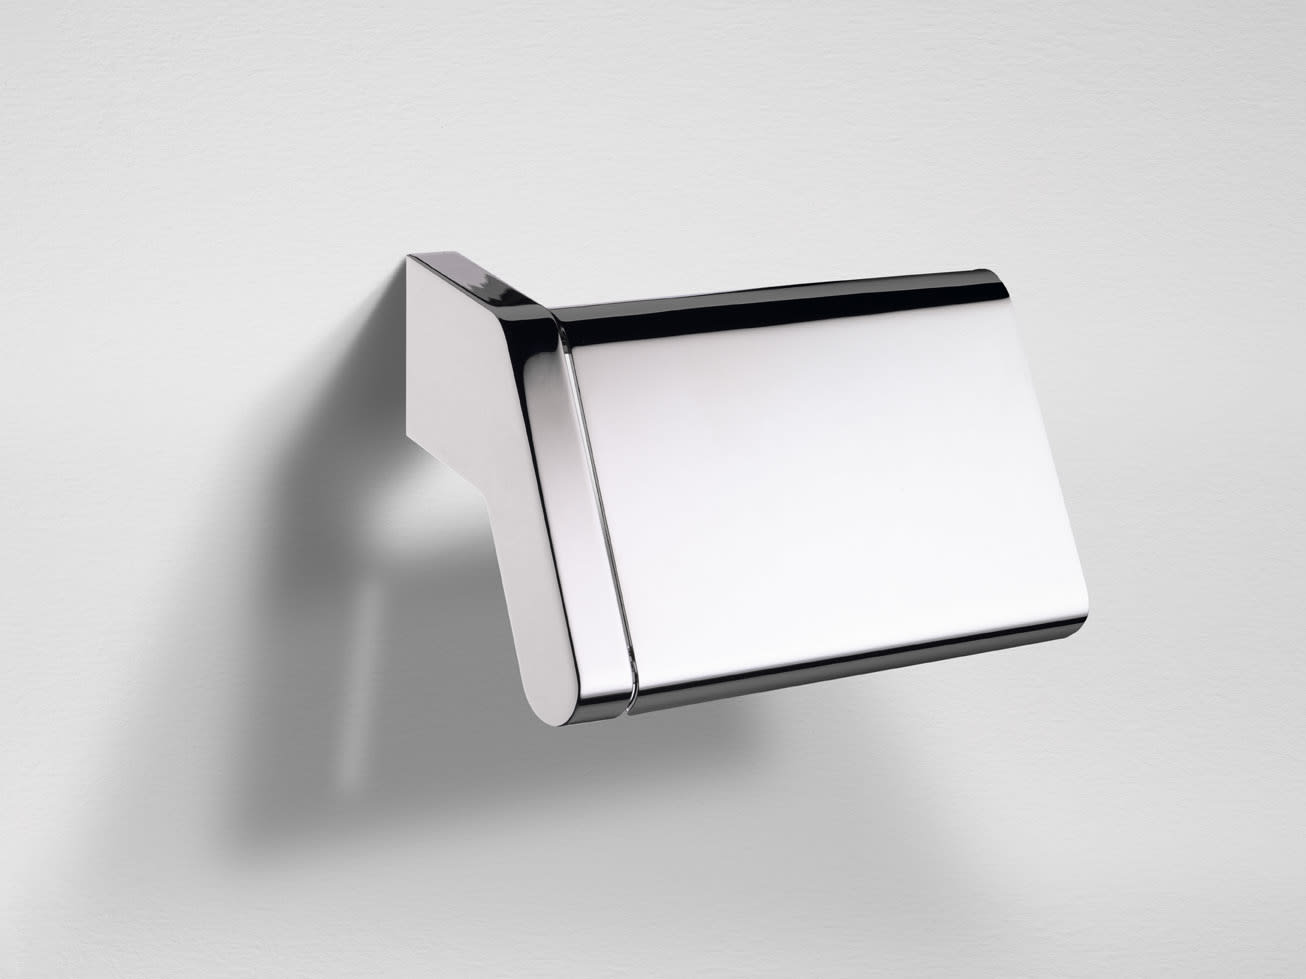 Sonia 124718 S3 Toilet Roll Holder | QualityBath.com